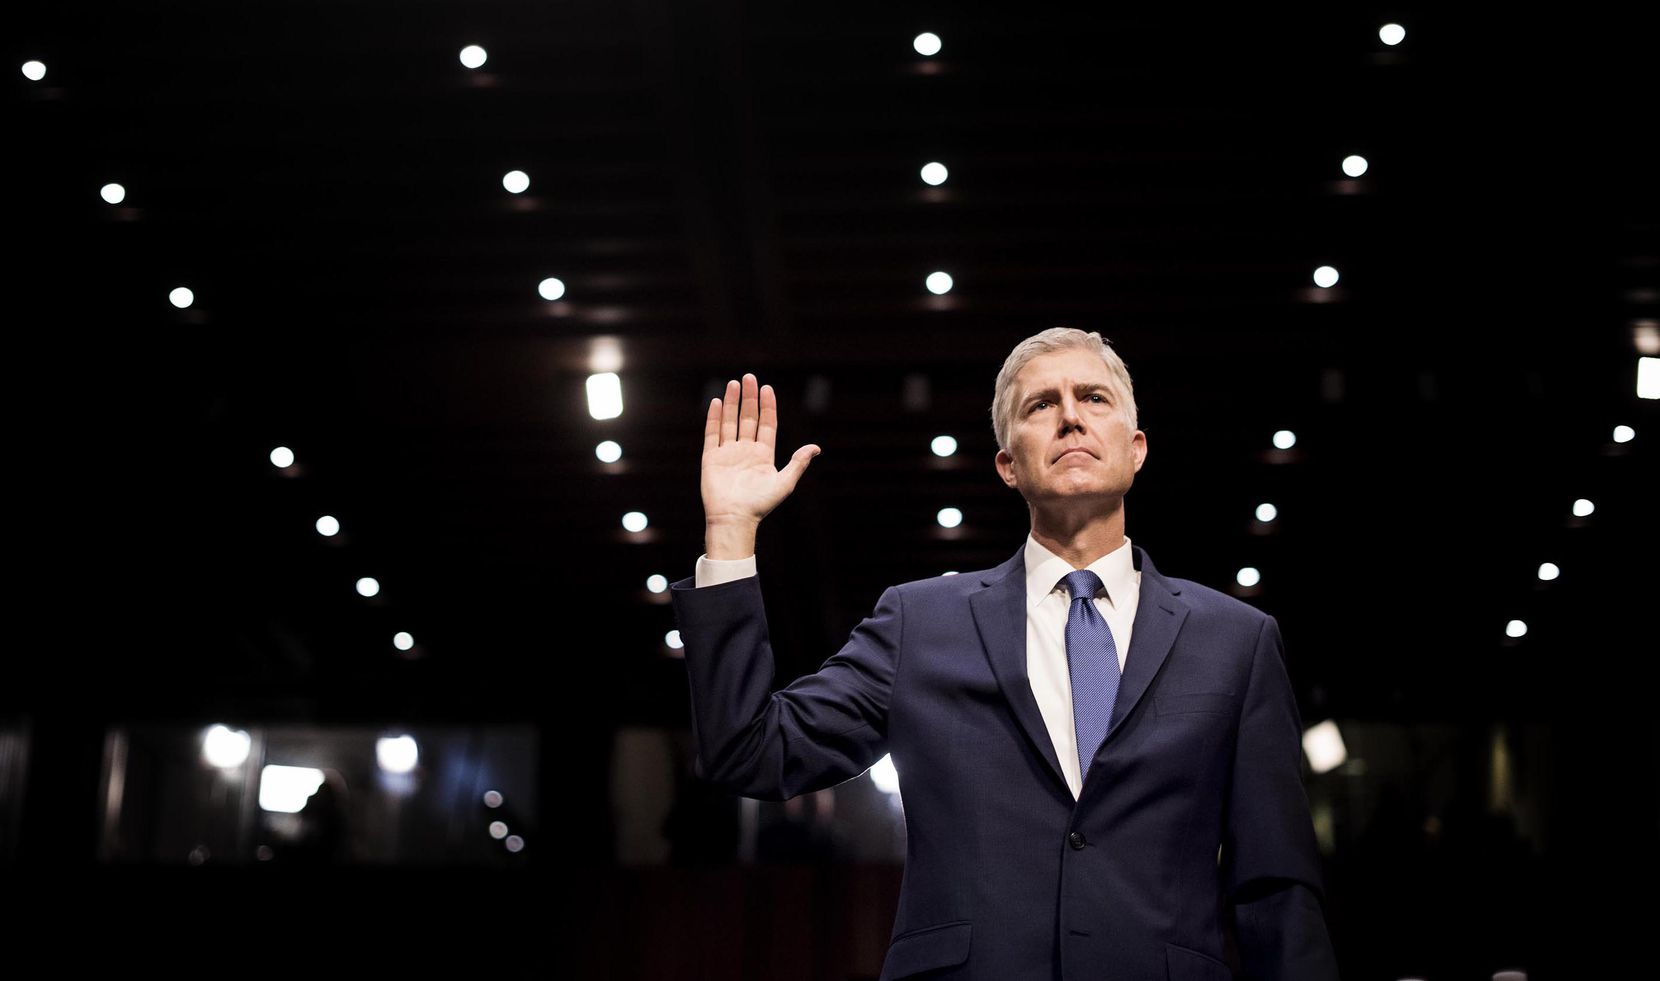 Neil Gorsuch, President Donald Trump's nominee for the Supreme Court, is sworn in Monday on Capitol Hill. In a 13-minute introductory address during his confirmation hearing, Gorsuch tried to reassure senators he was a mainstream jurist, who was in the majority in 99 percent of the 10 years of cases he decided on the appeals court.